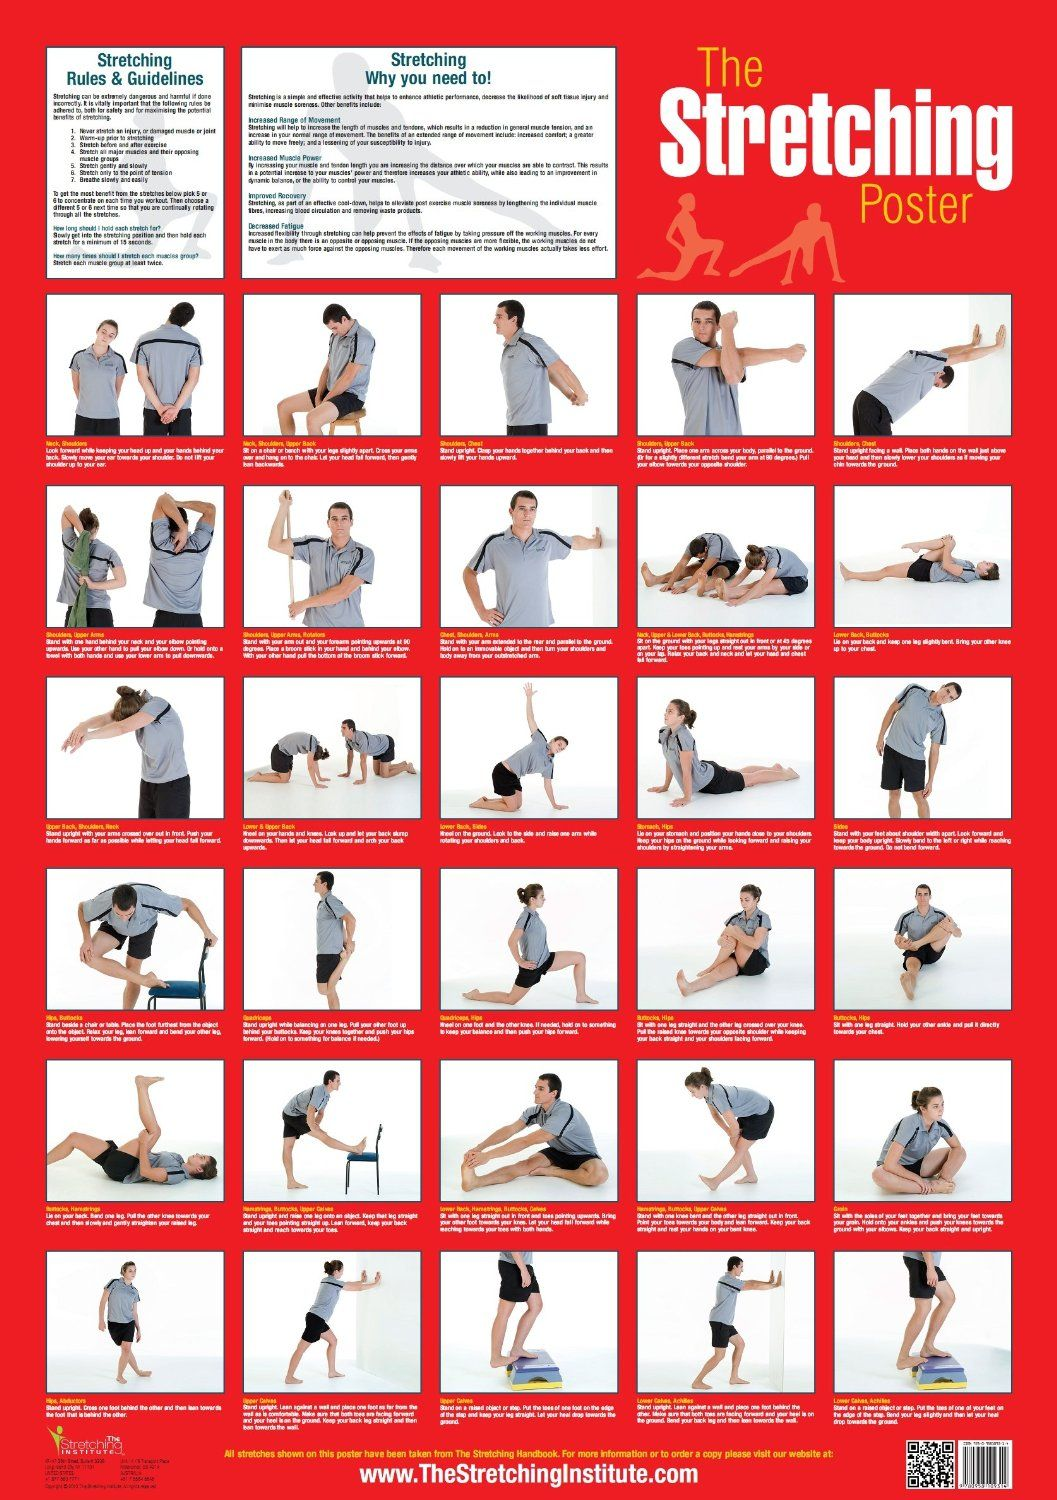 The Stretching Poster Sports & Outdoors